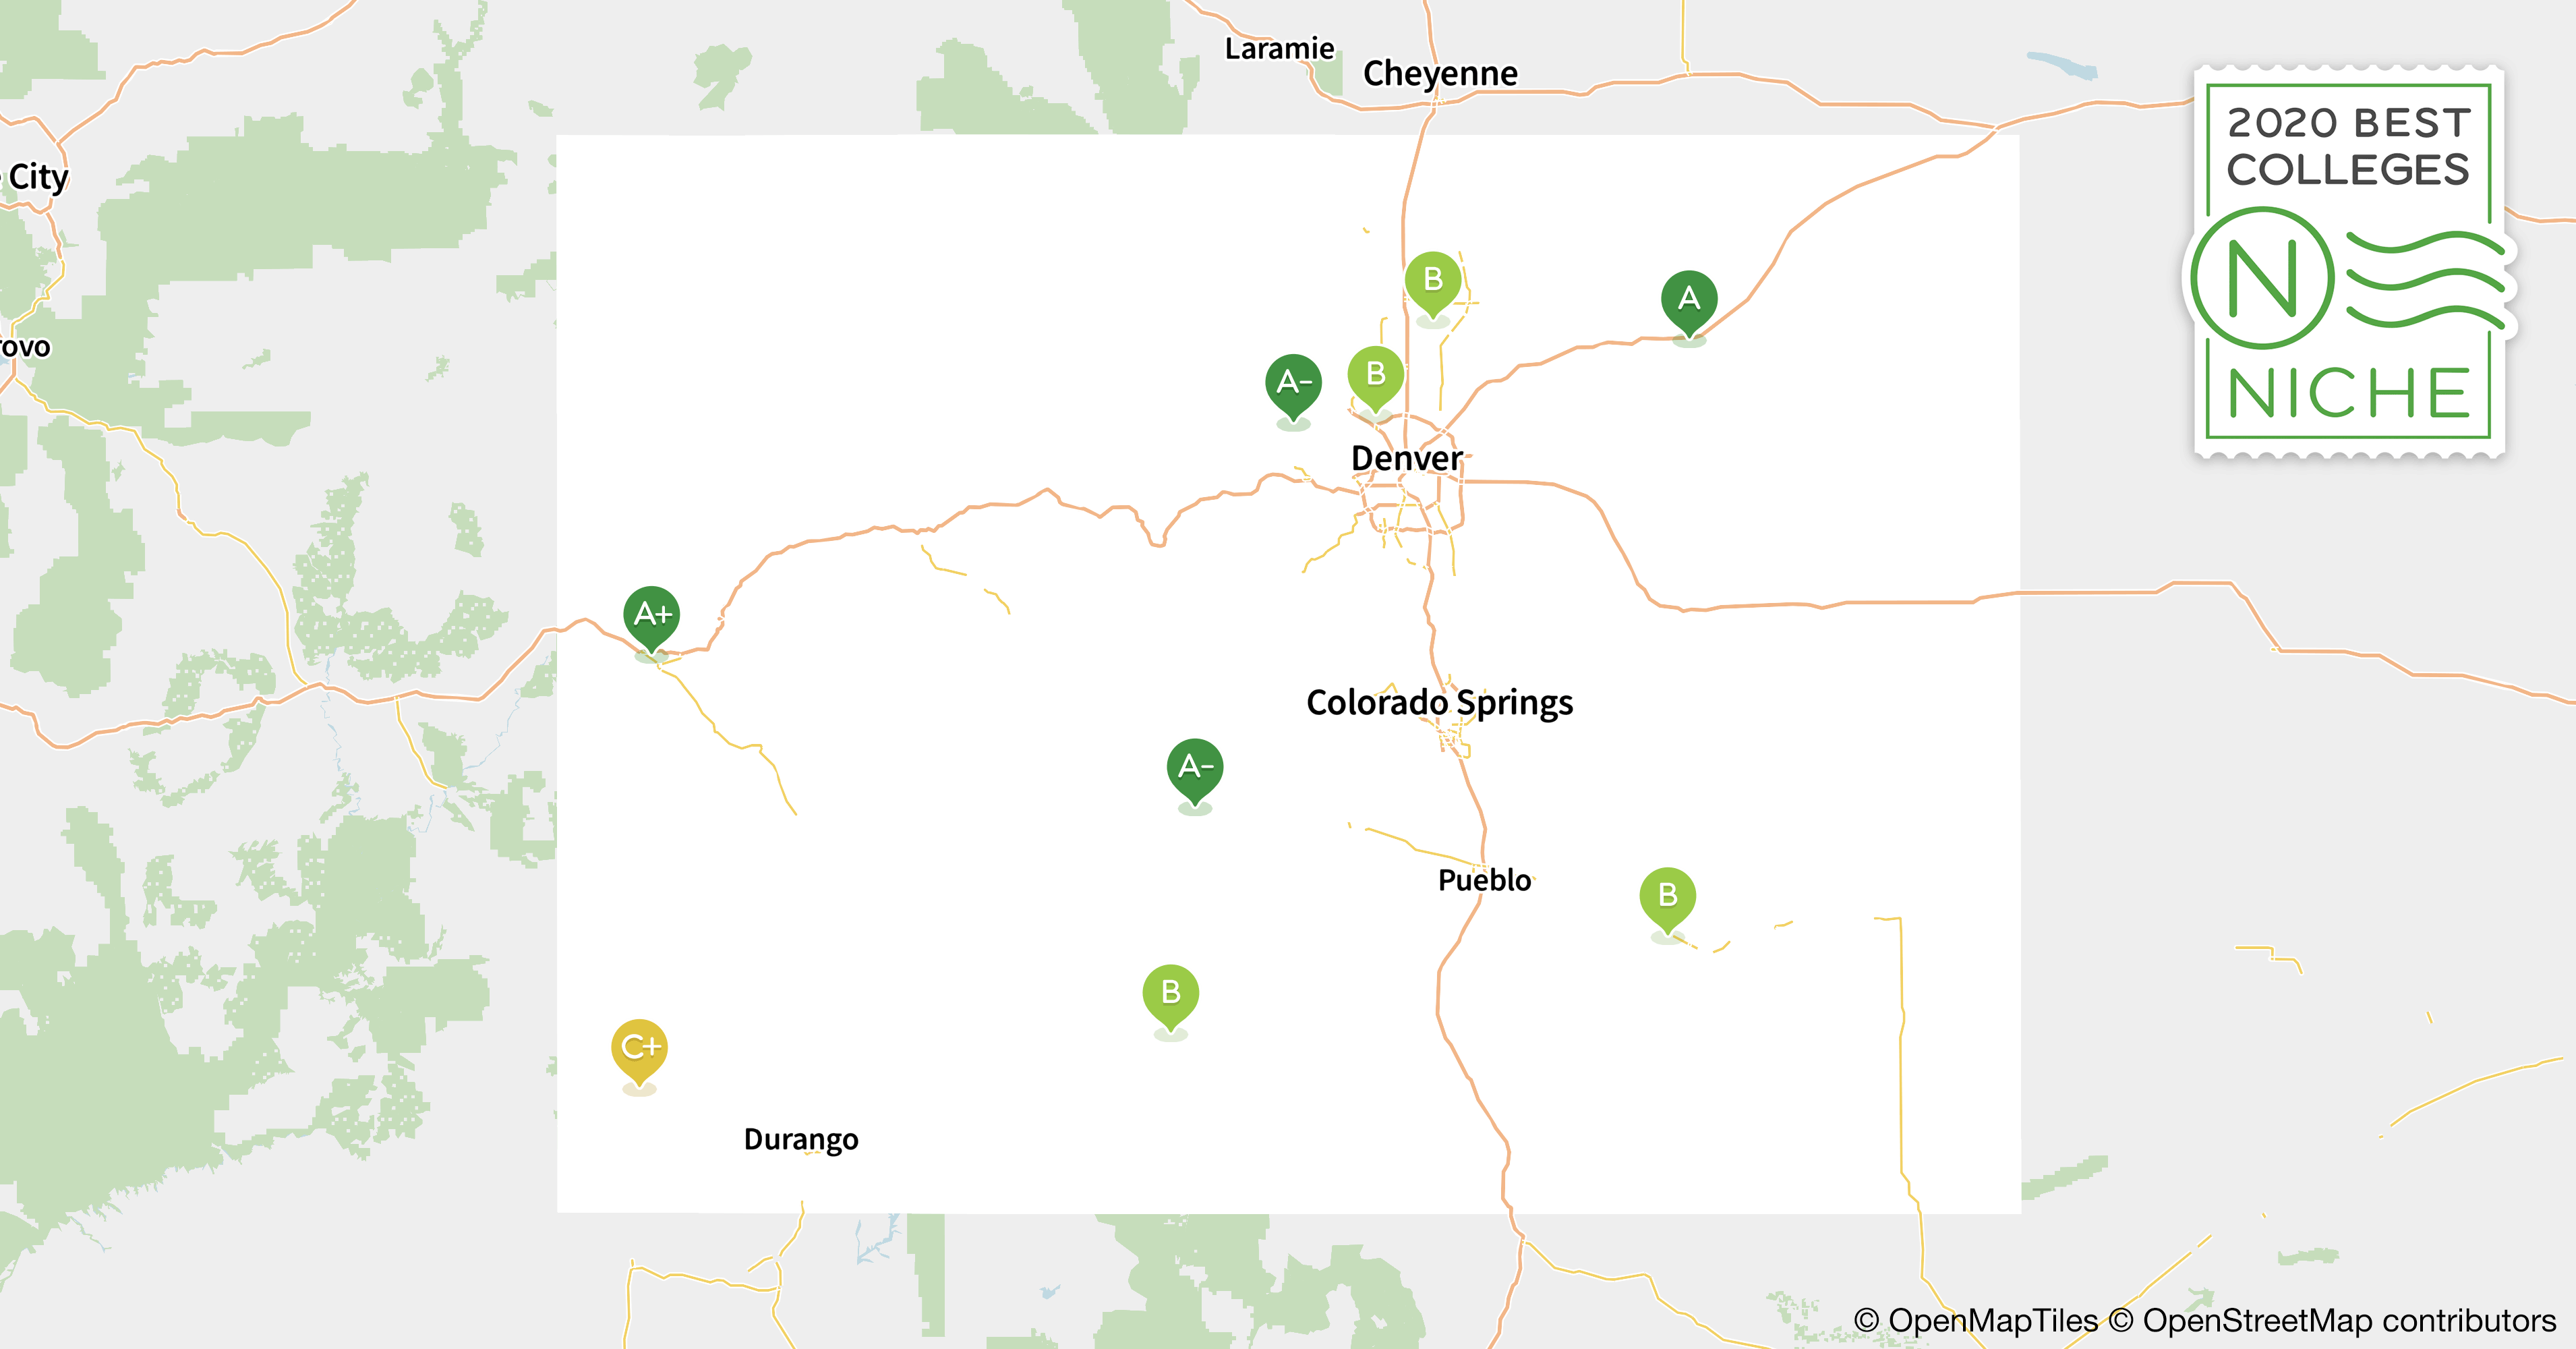 2020 Best Colleges in Colorado - Niche